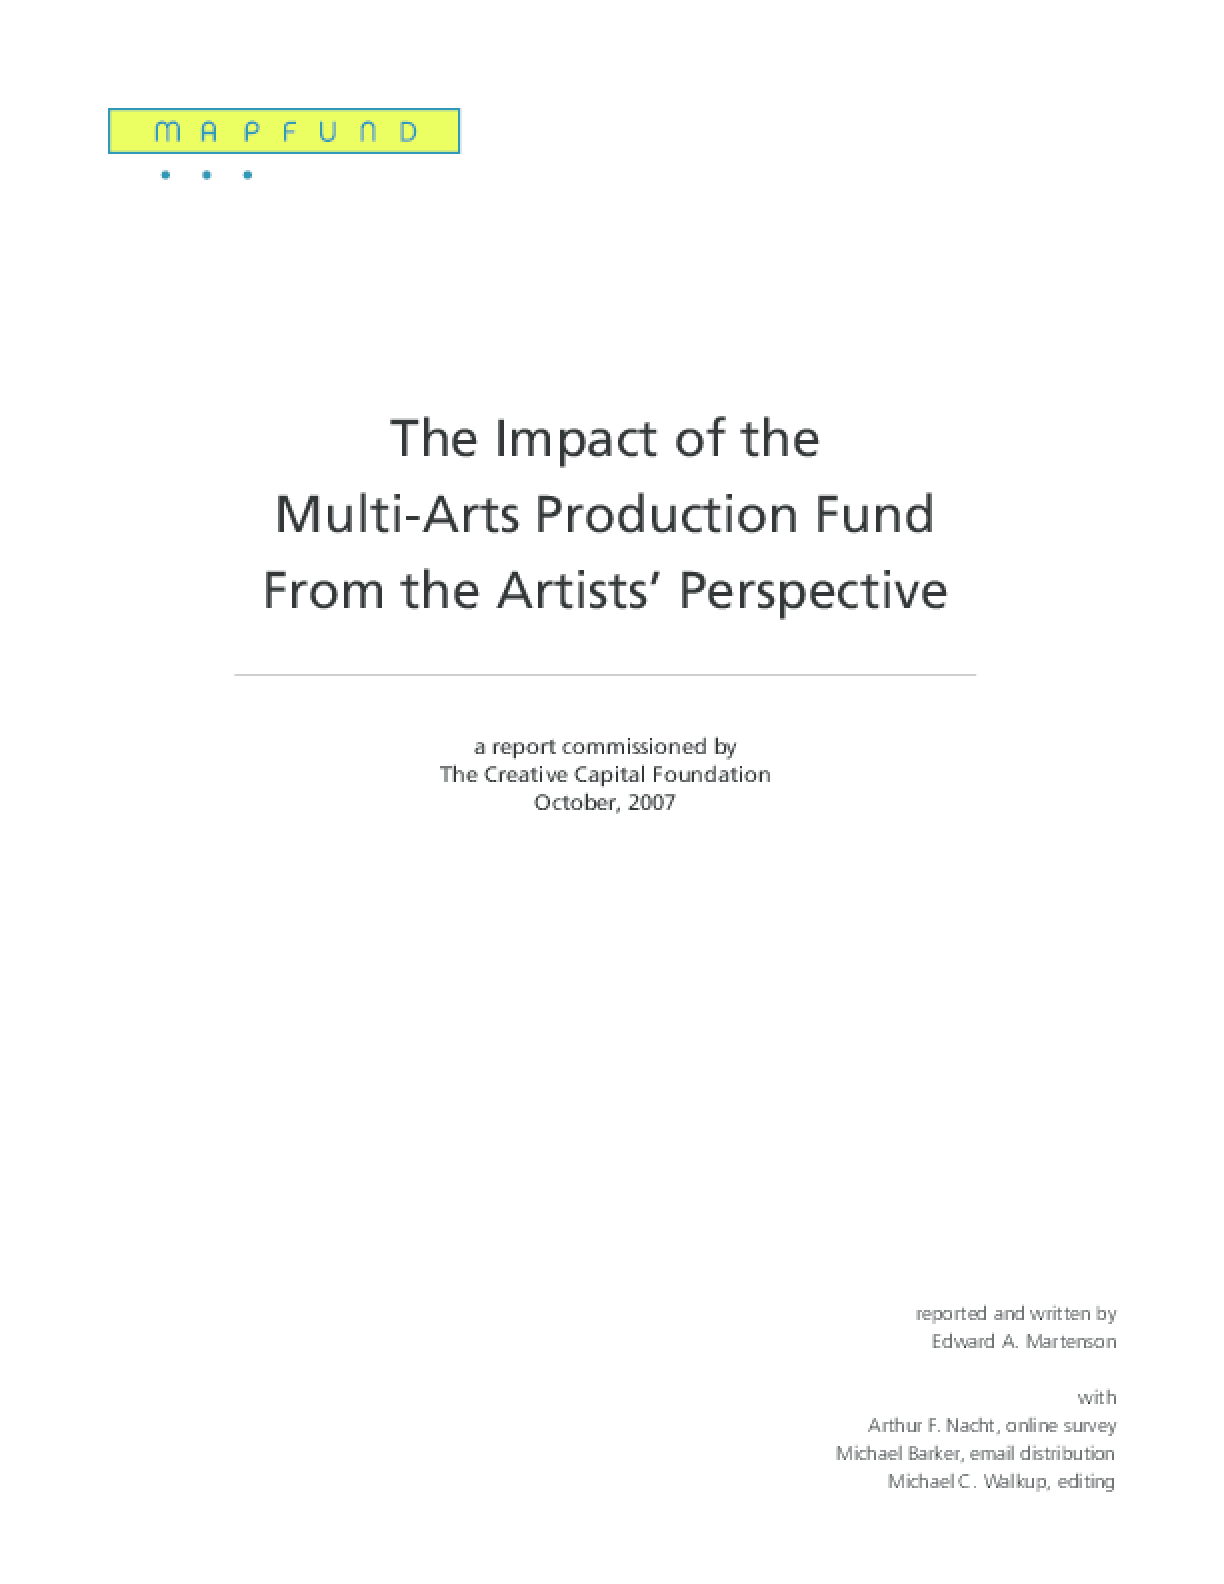 The Impact of the Multi-Arts Production Fund From the Artists' Perspective